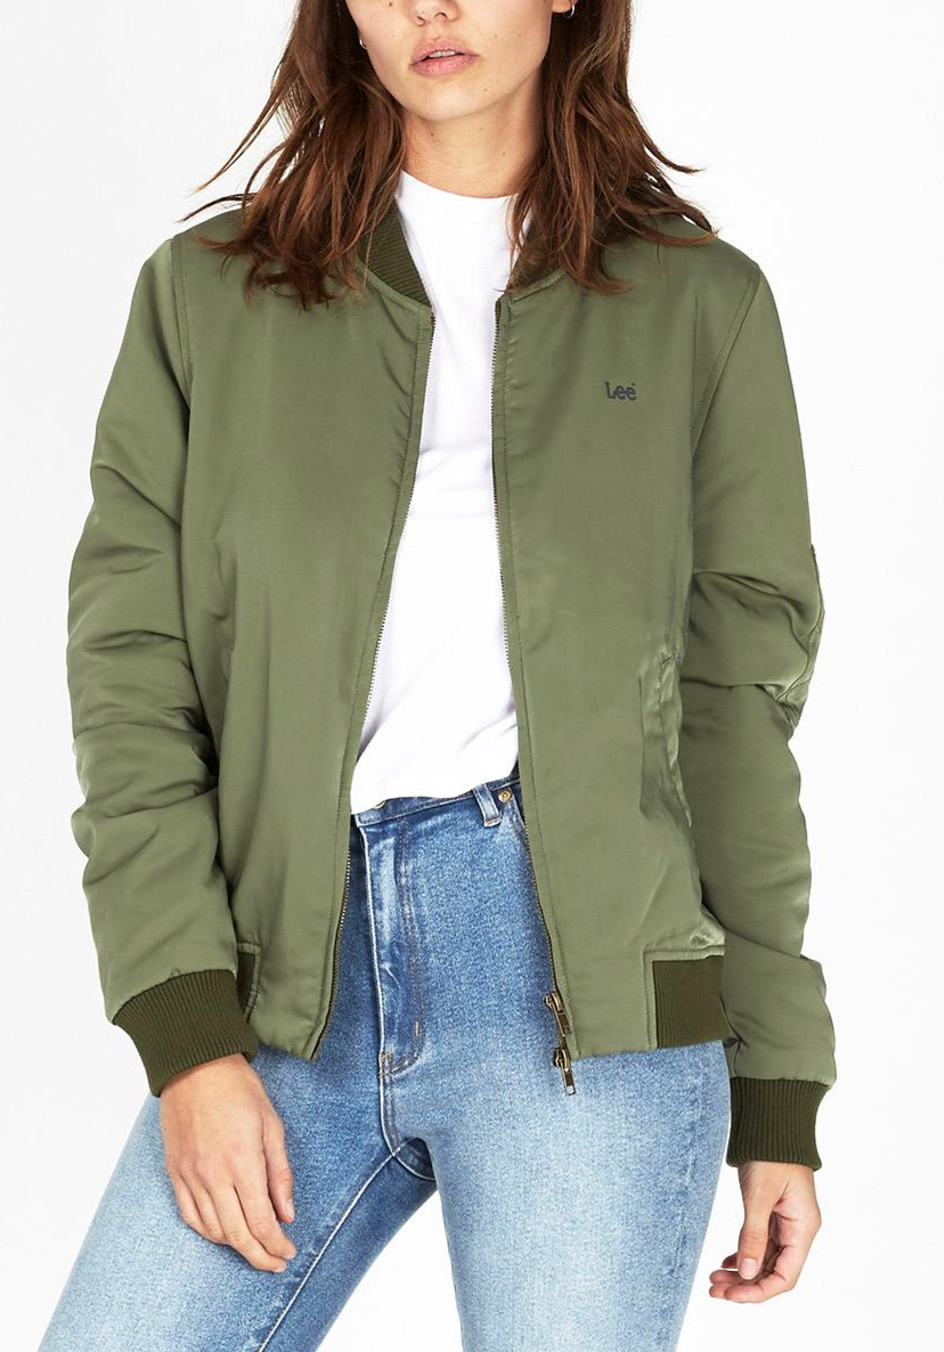 Lee heroes bomber jacket $159.95